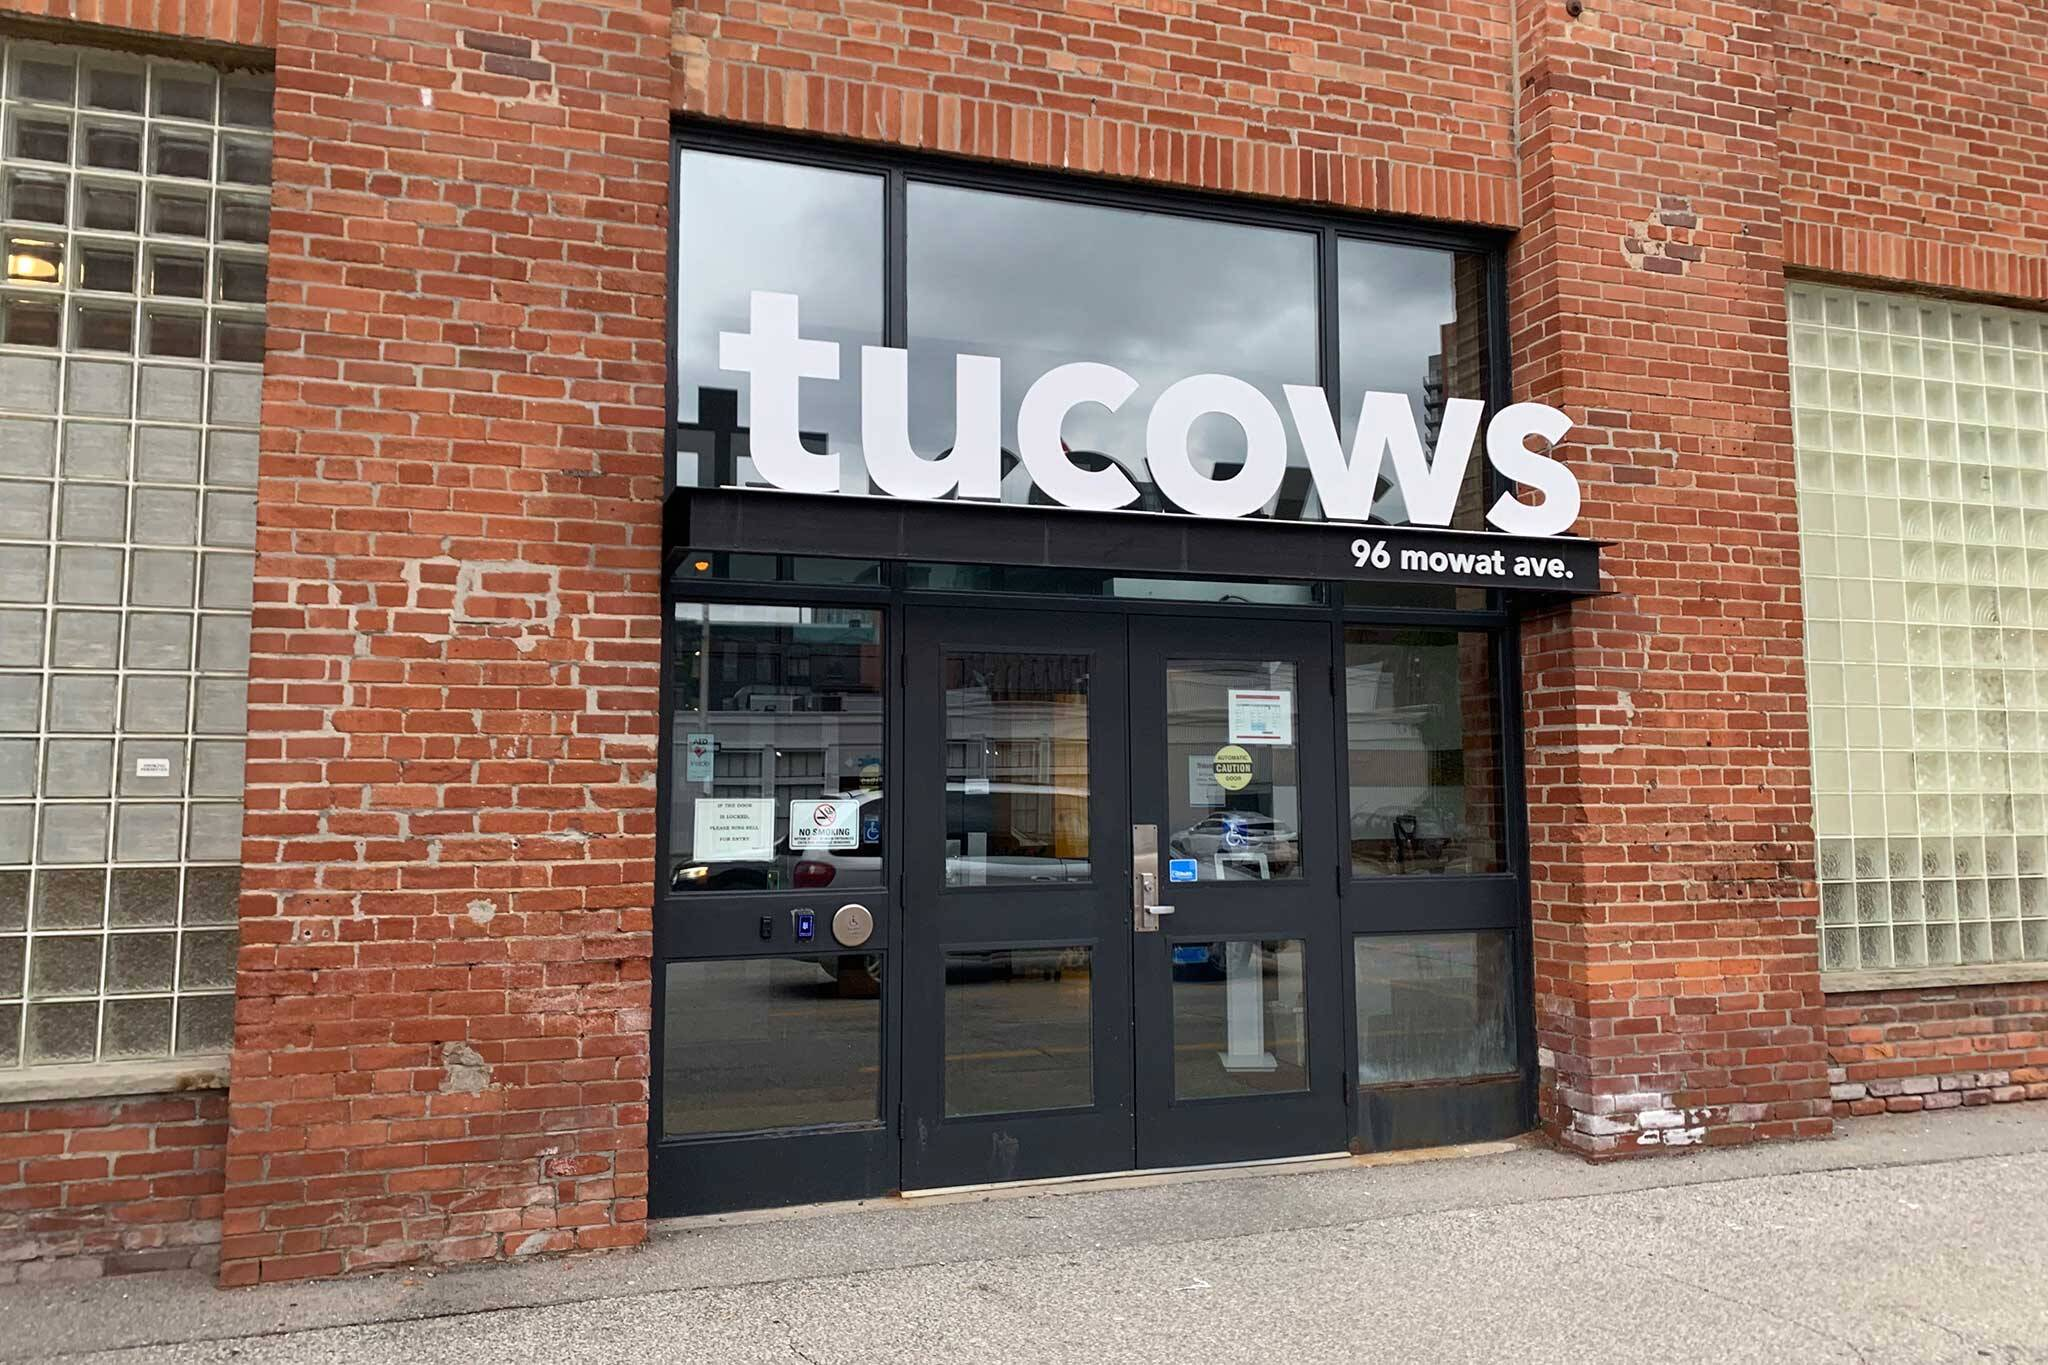 tucows 8chan